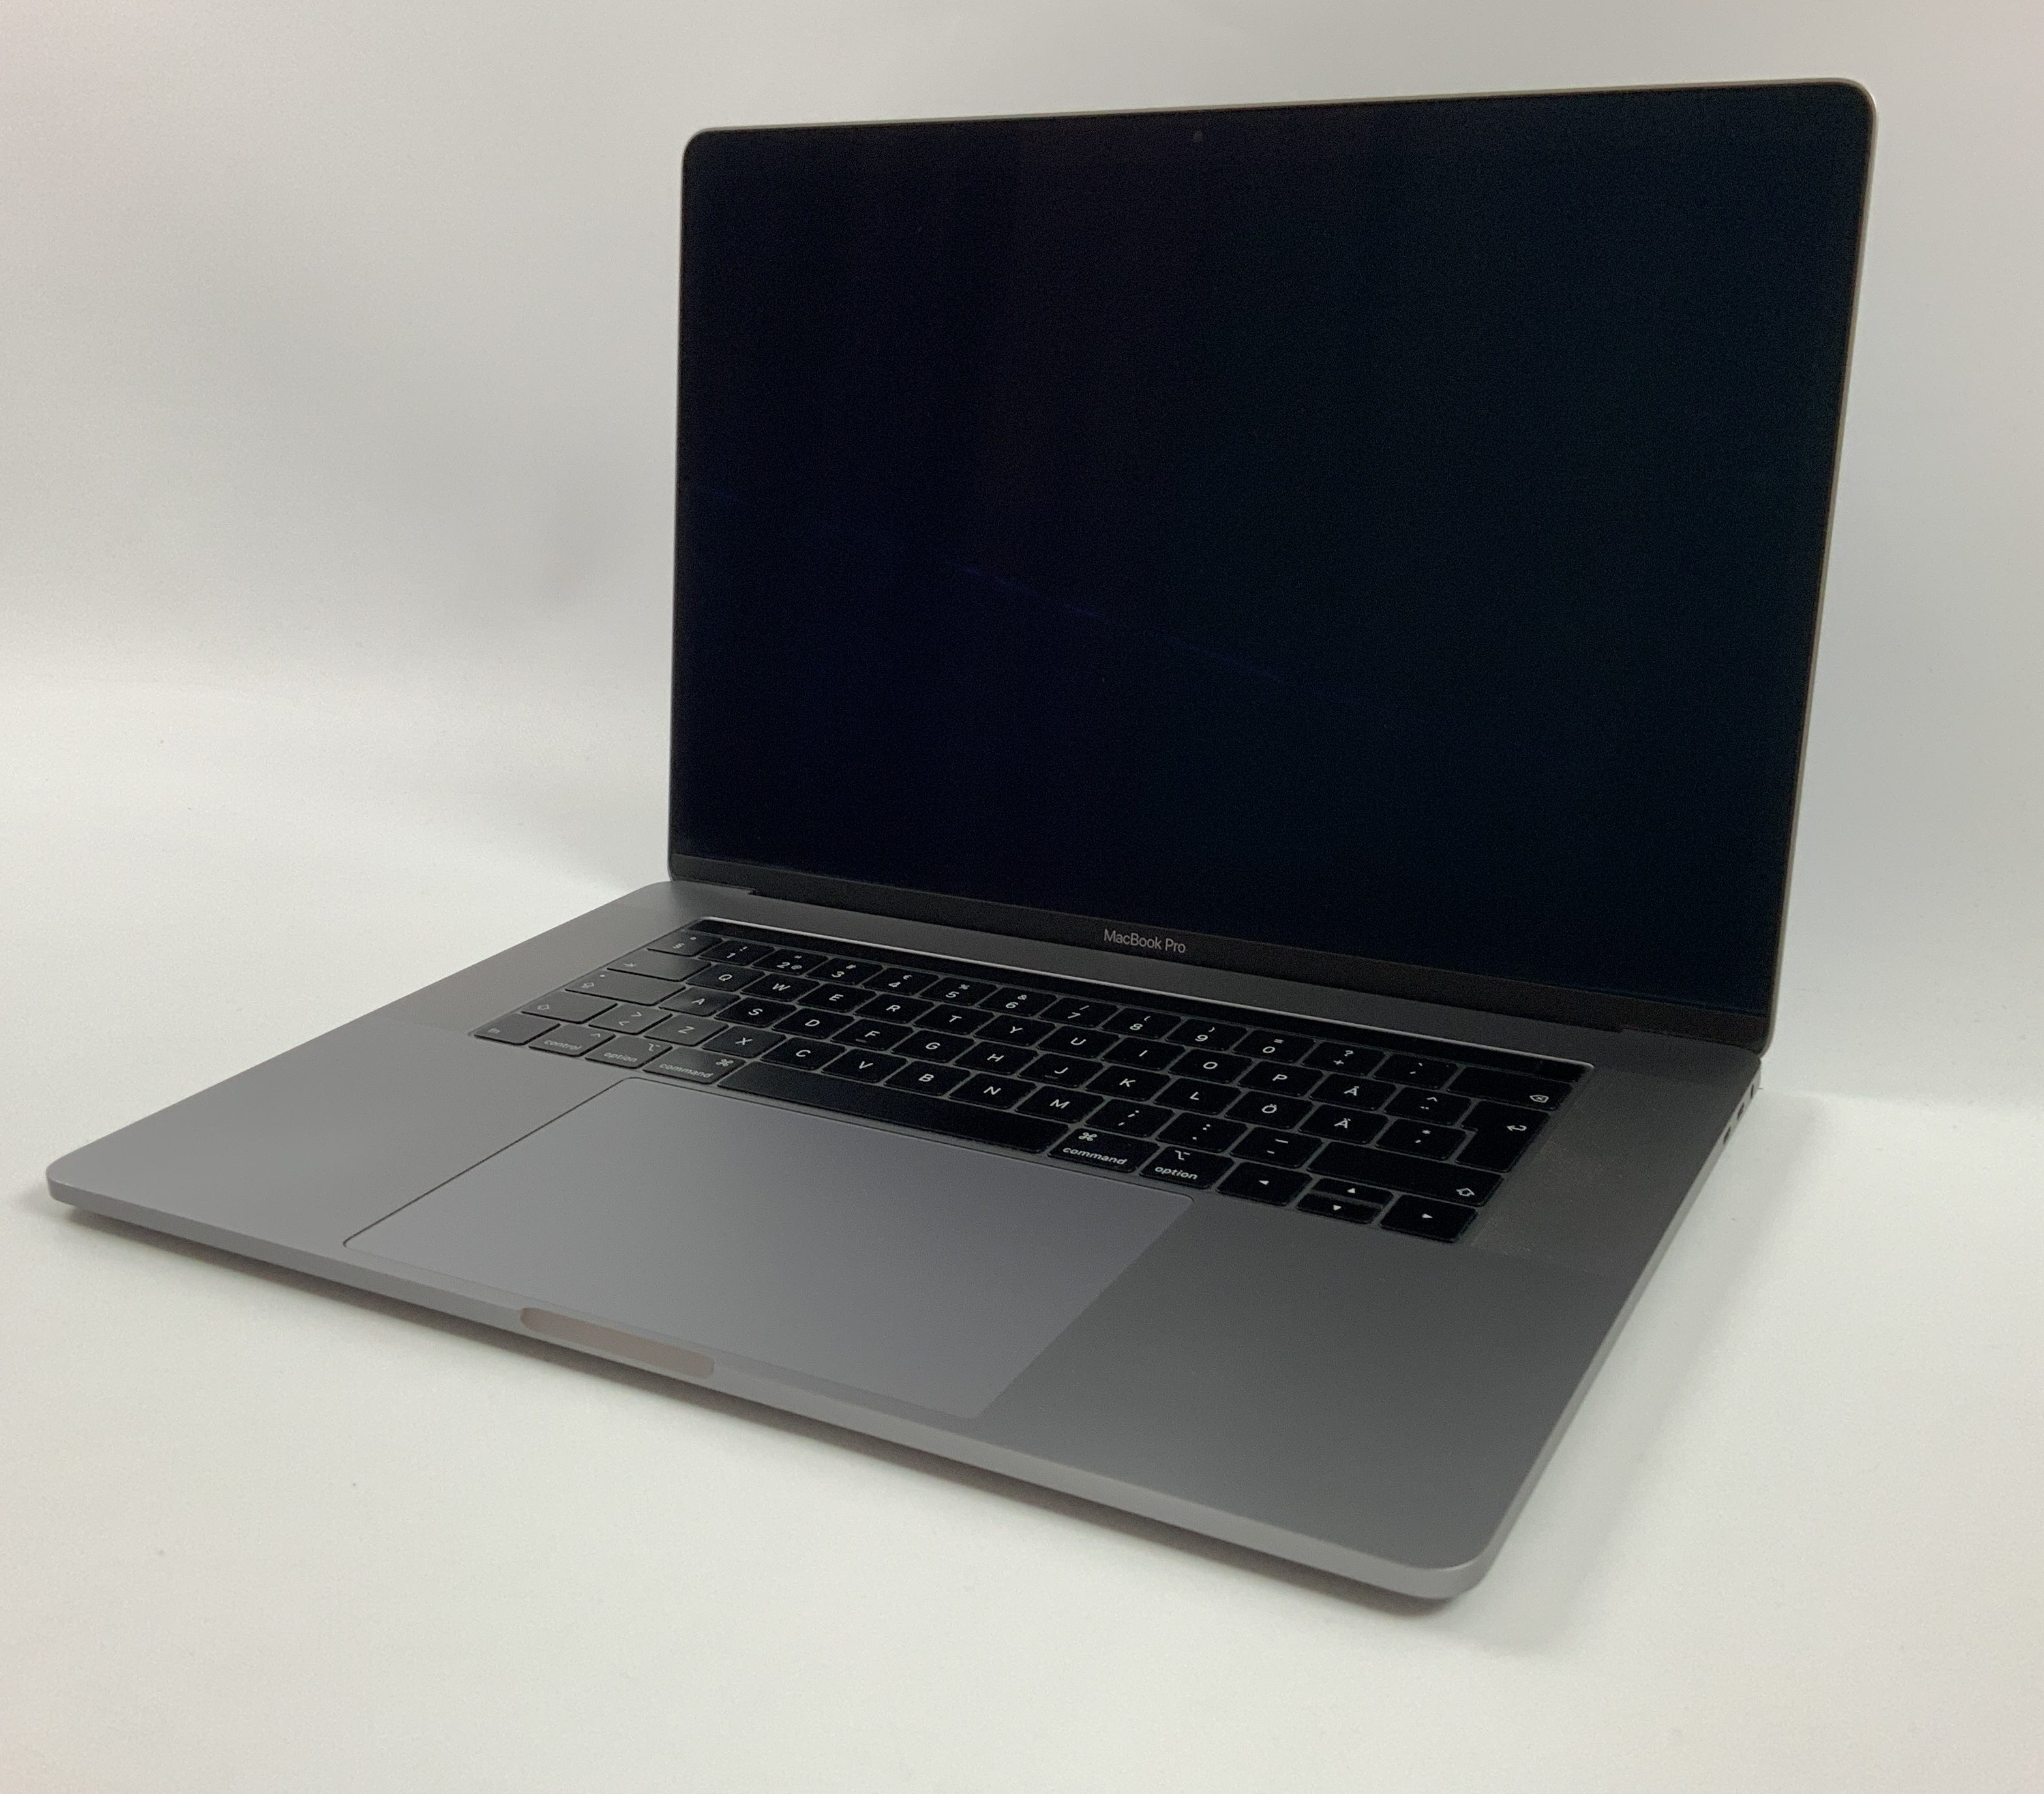 "MacBook Pro 15"" Touch Bar Mid 2018 (Intel 6-Core i7 2.2 GHz 16 GB RAM 512 GB SSD), Space Gray, Intel 6-Core i7 2.2 GHz, 16 GB RAM, 512 GB SSD, immagine 1"